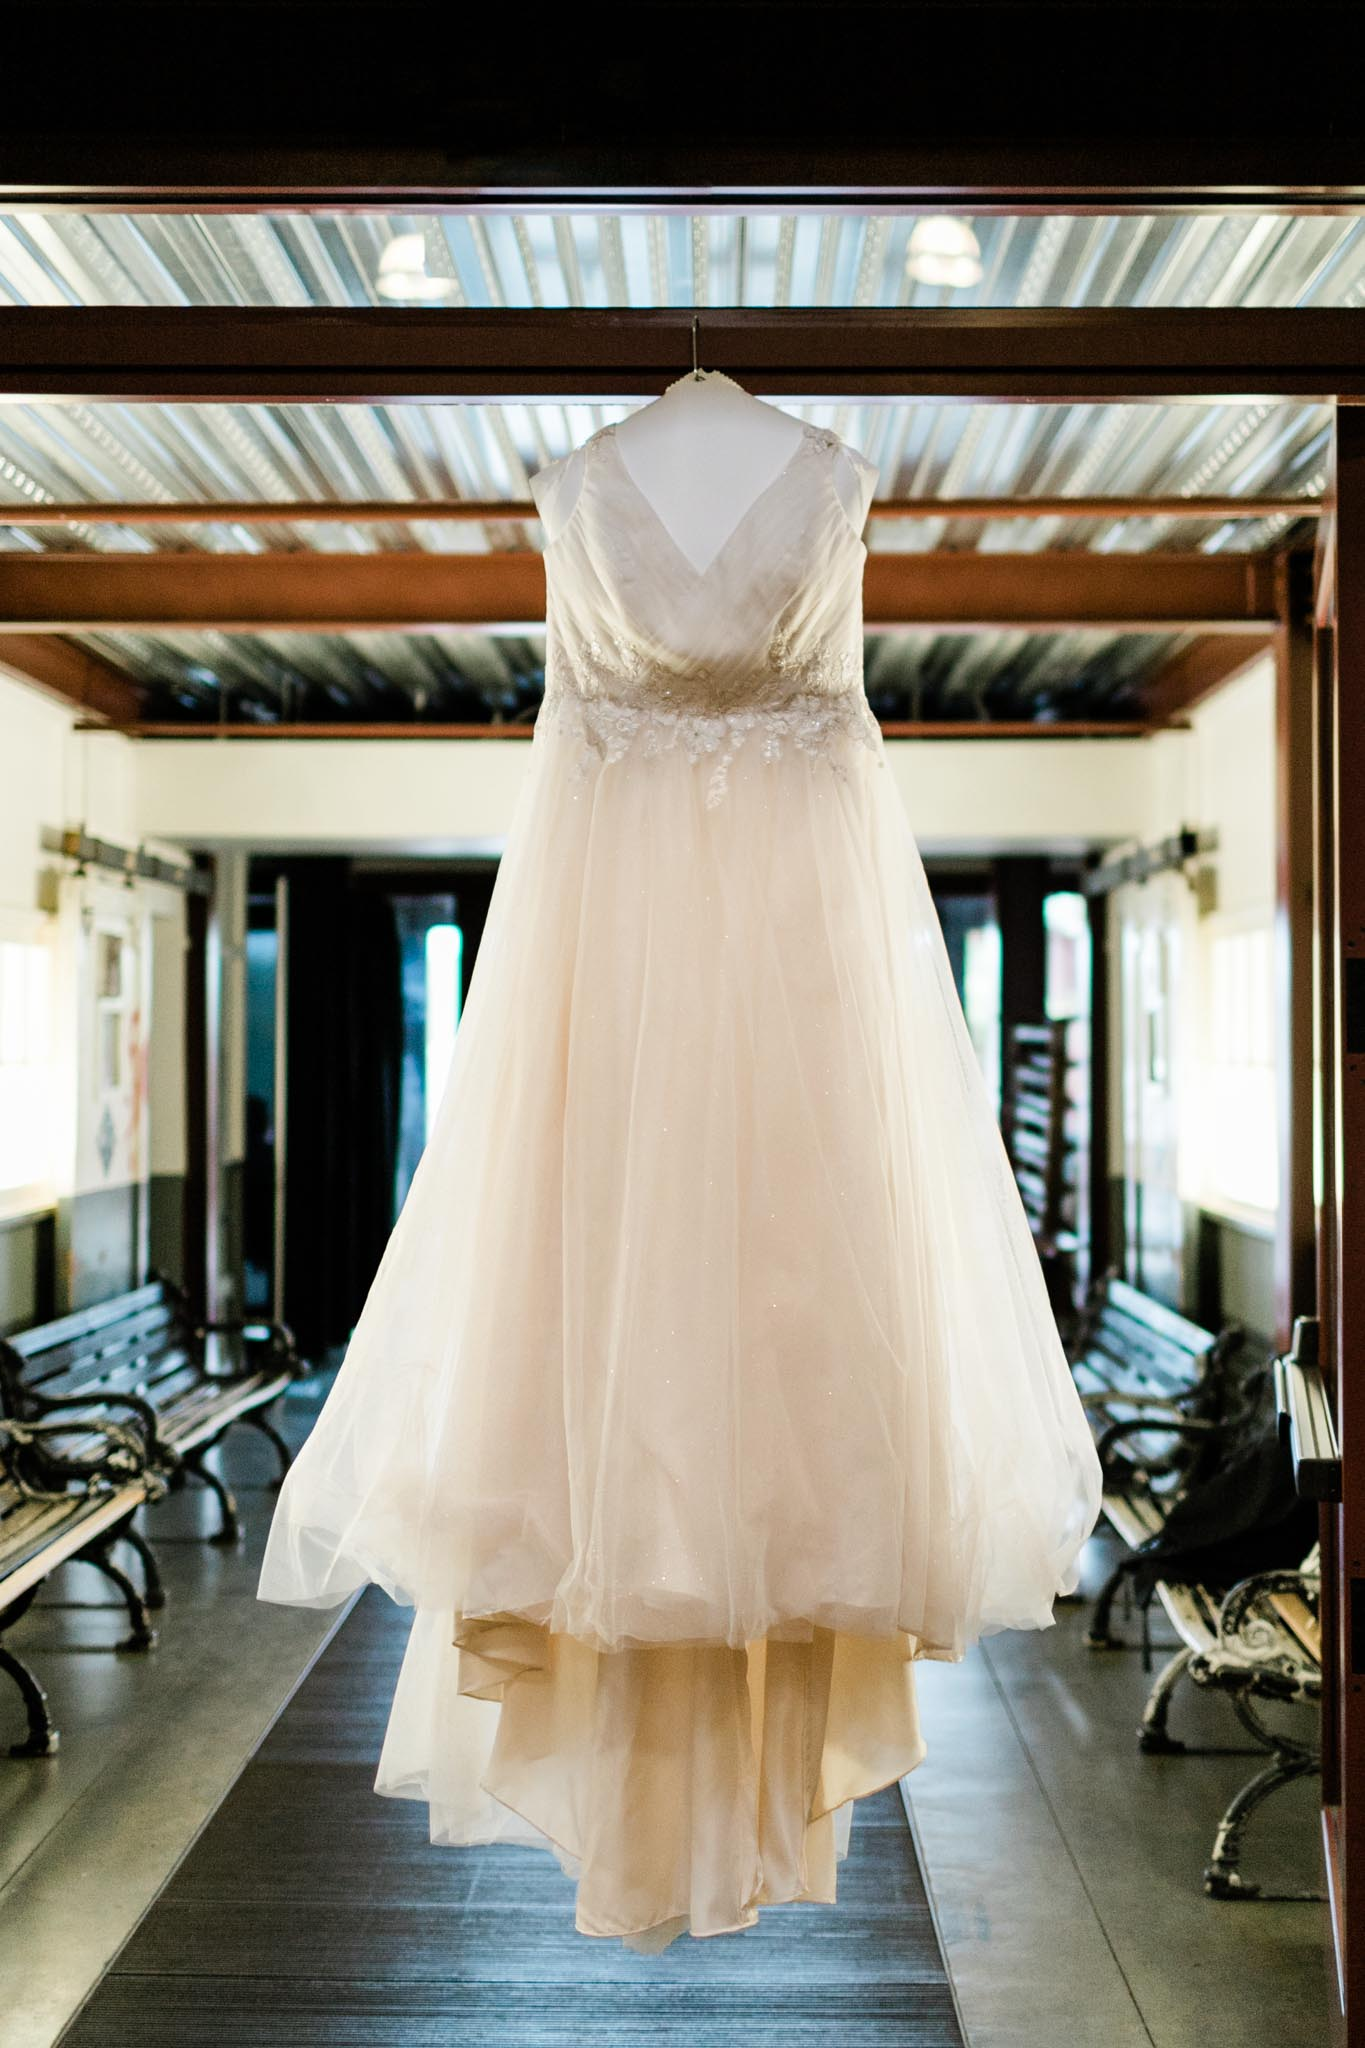 Haw River Ballroom Wedding | Durham Photographer | By G. Lin Photography | Wedding Dress hanging on doorway